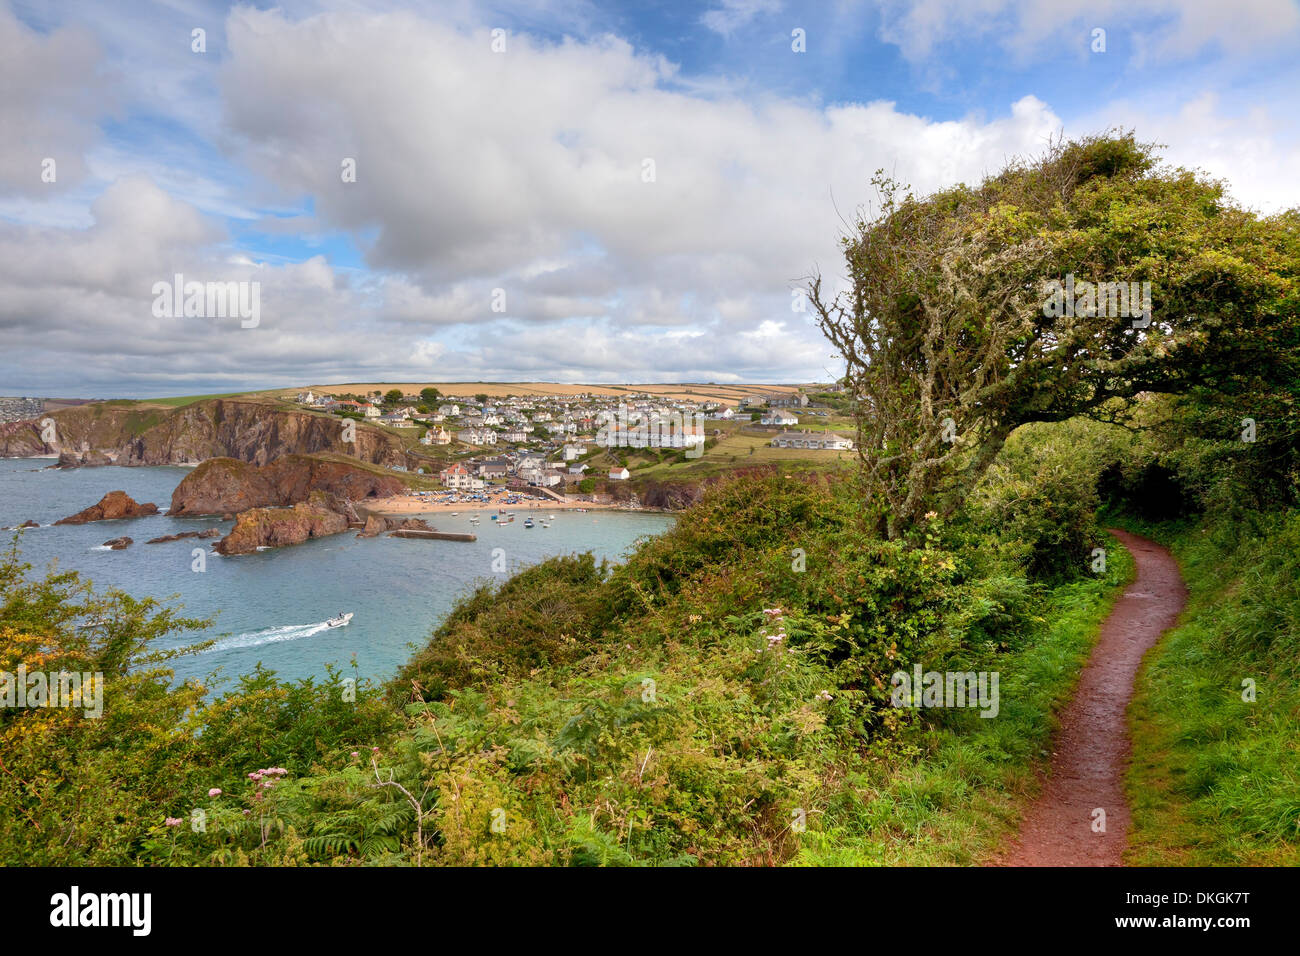 Looking towards the popular seaside resort of Hope Cove, Devon, England. - Stock Image